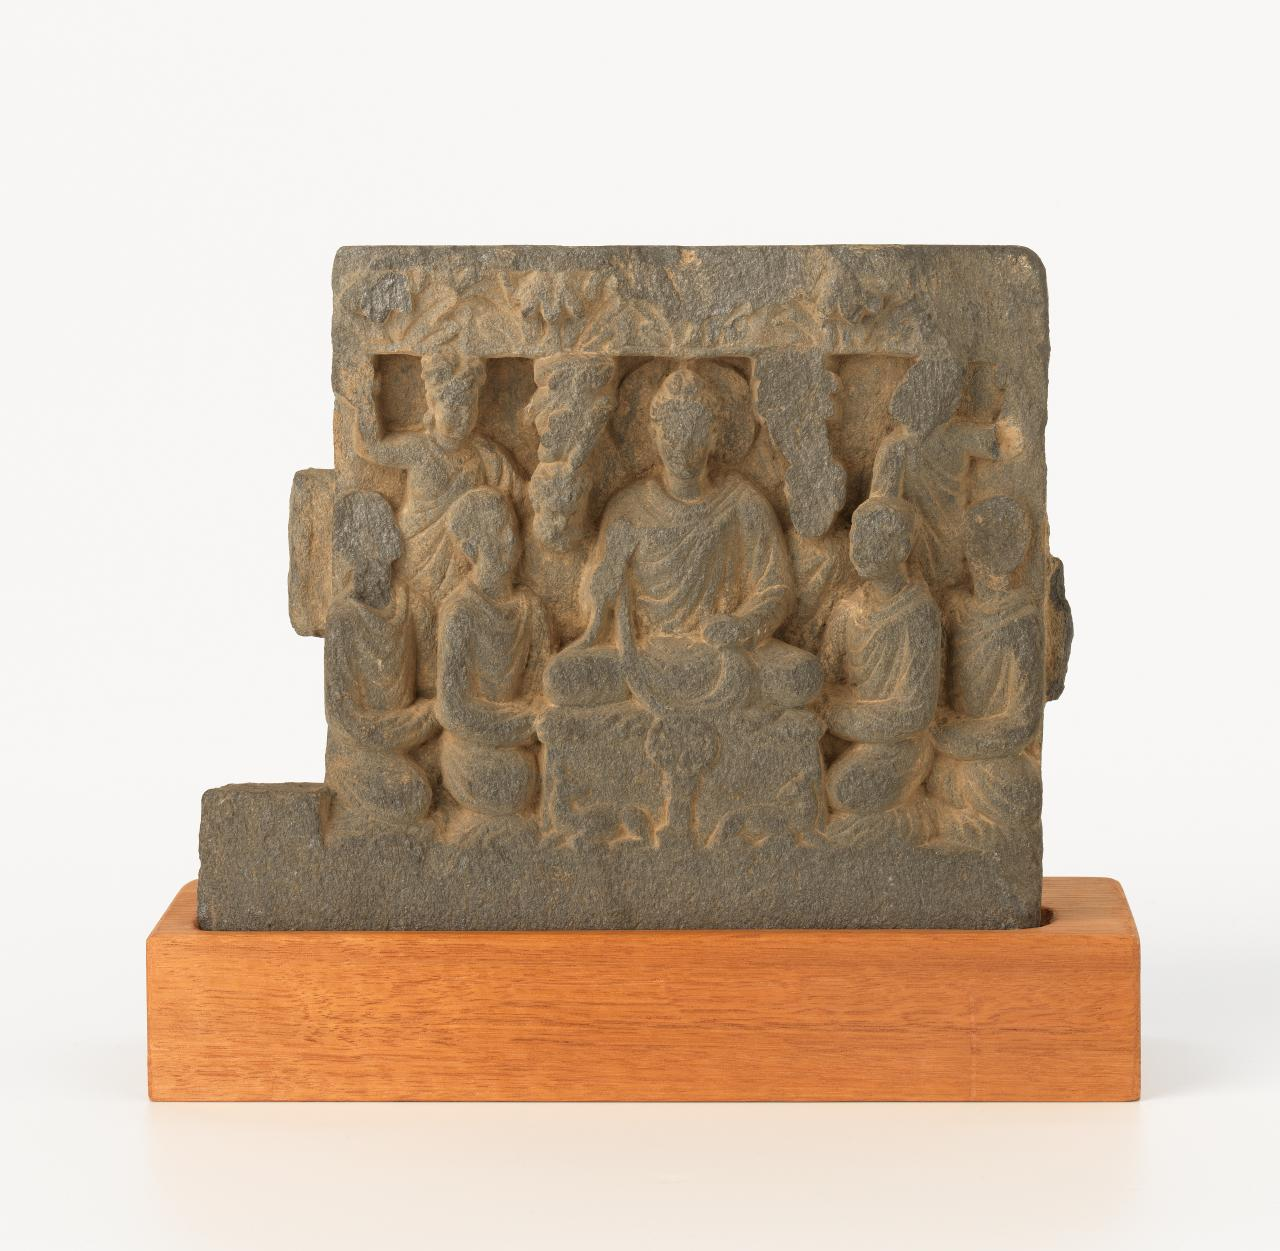 Buddha and worshippers